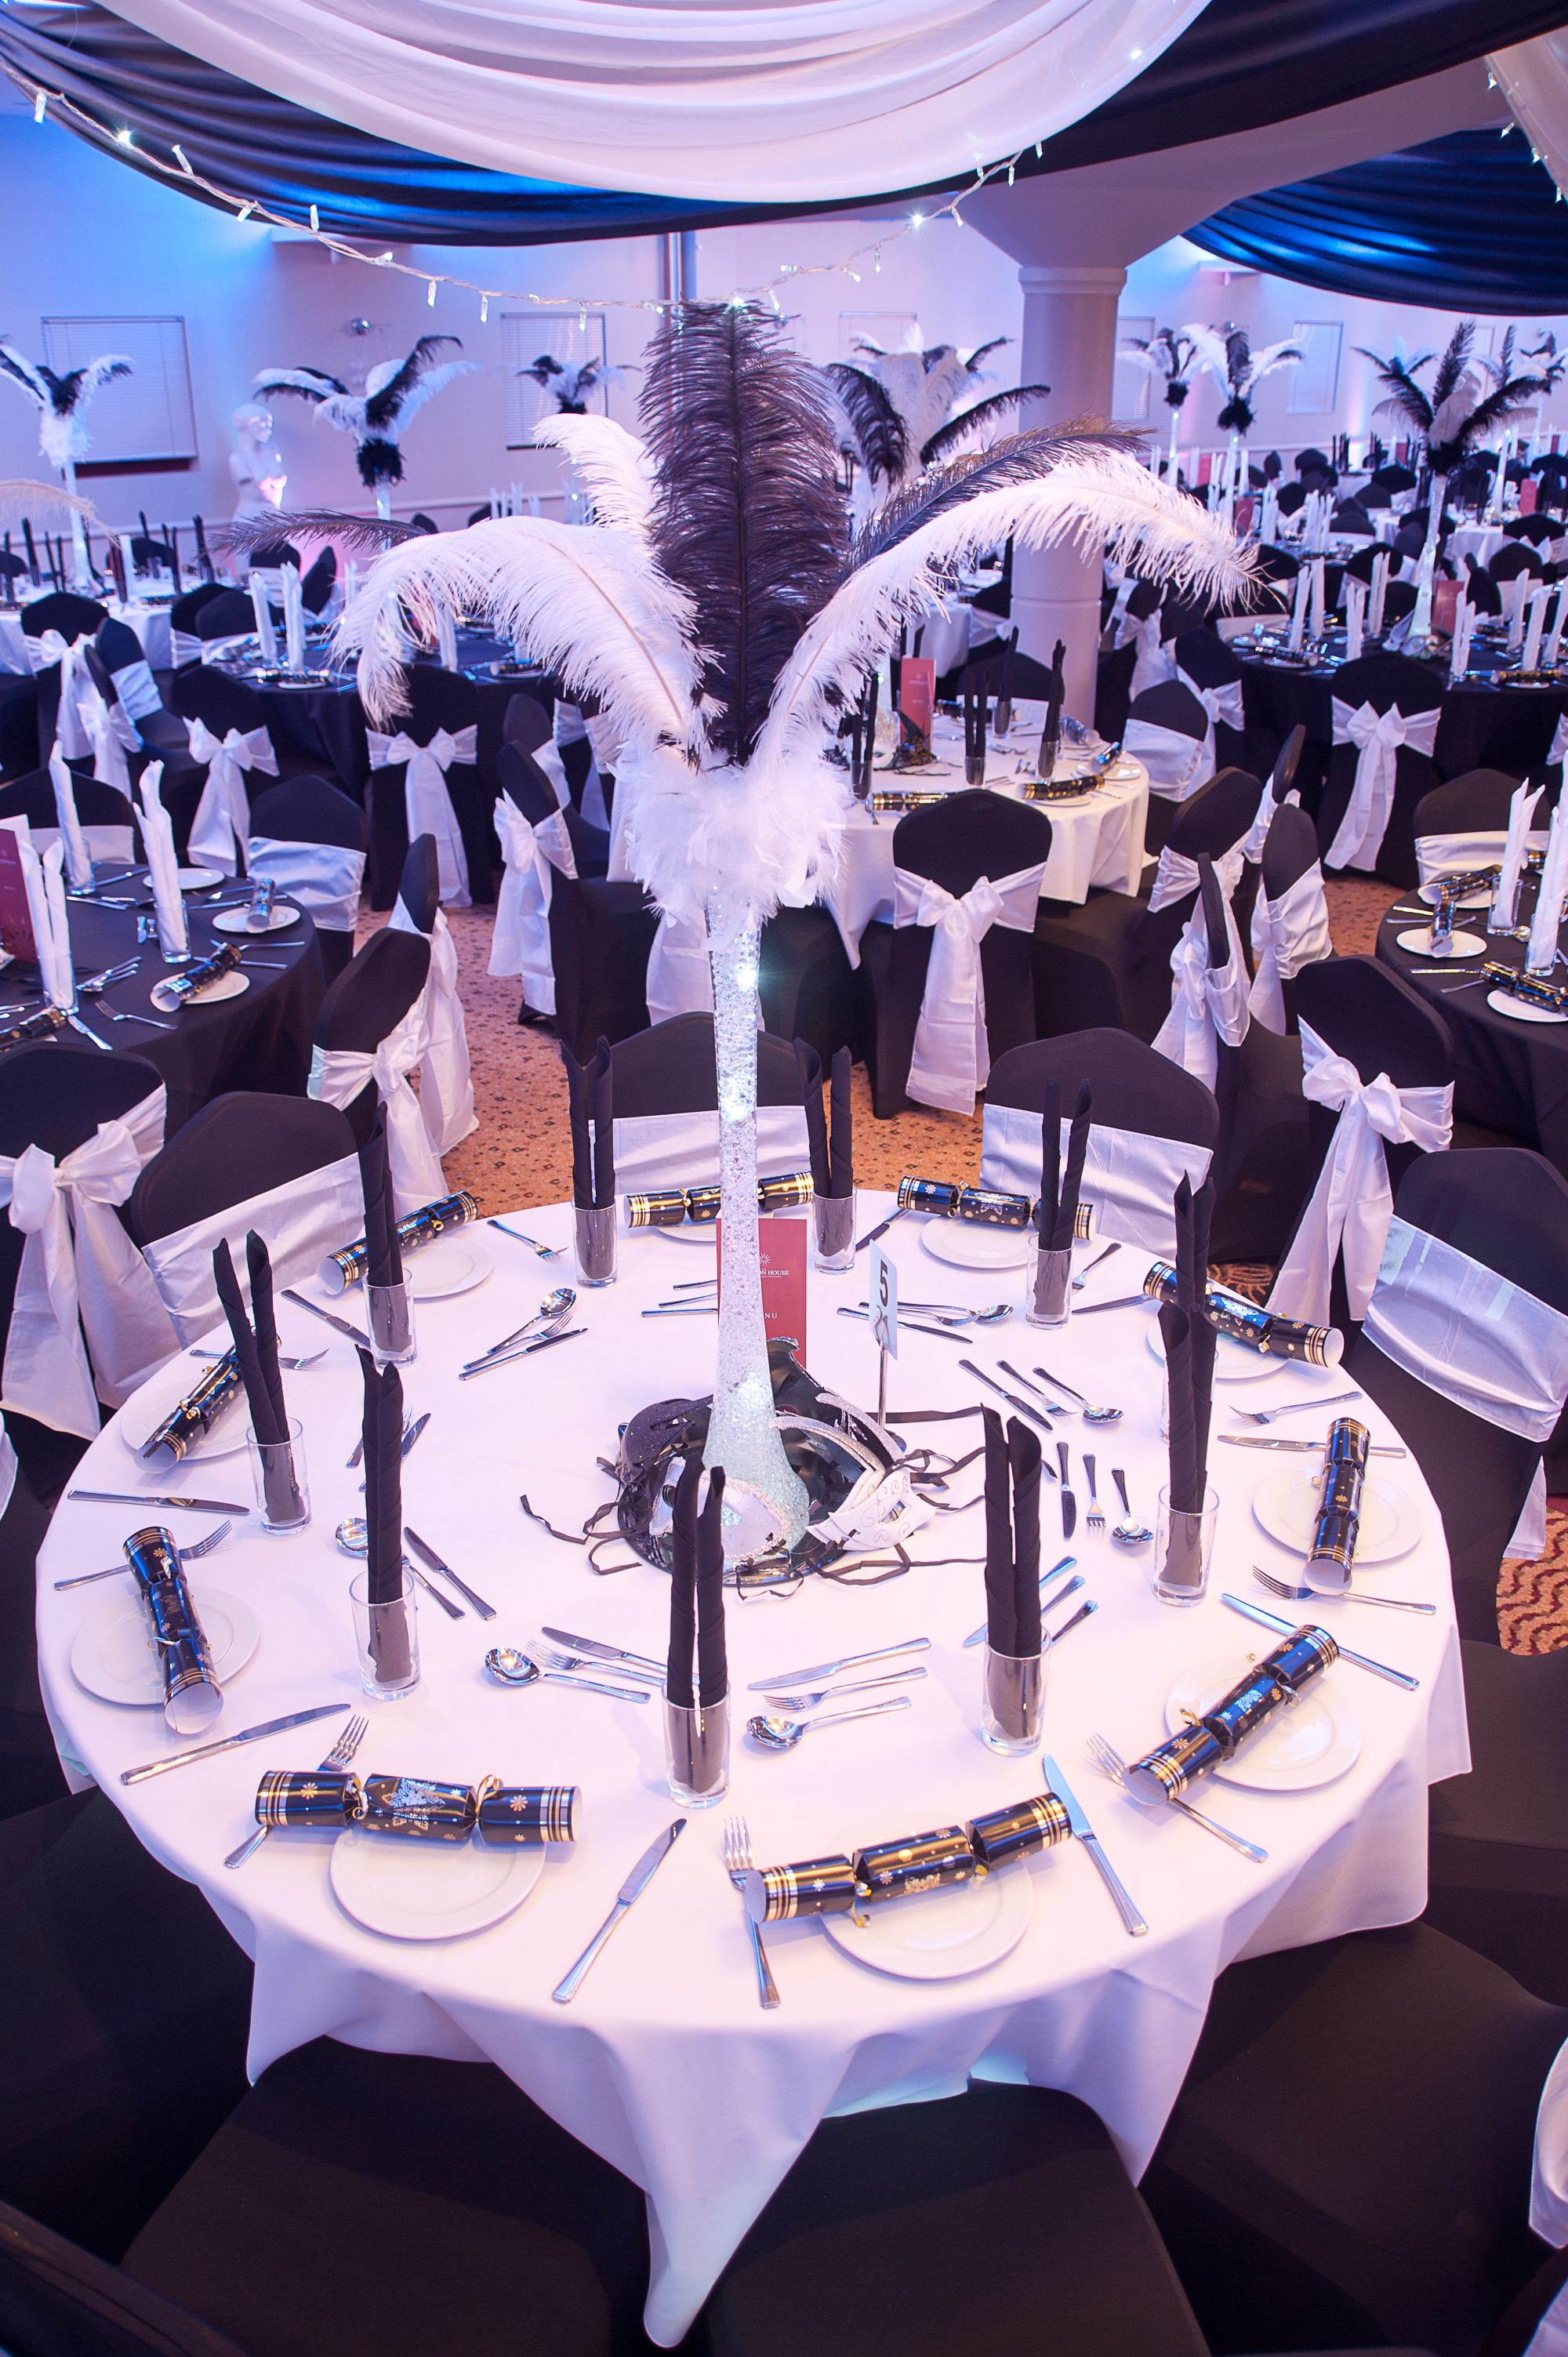 black & white masquerade ball at the auction house. photo